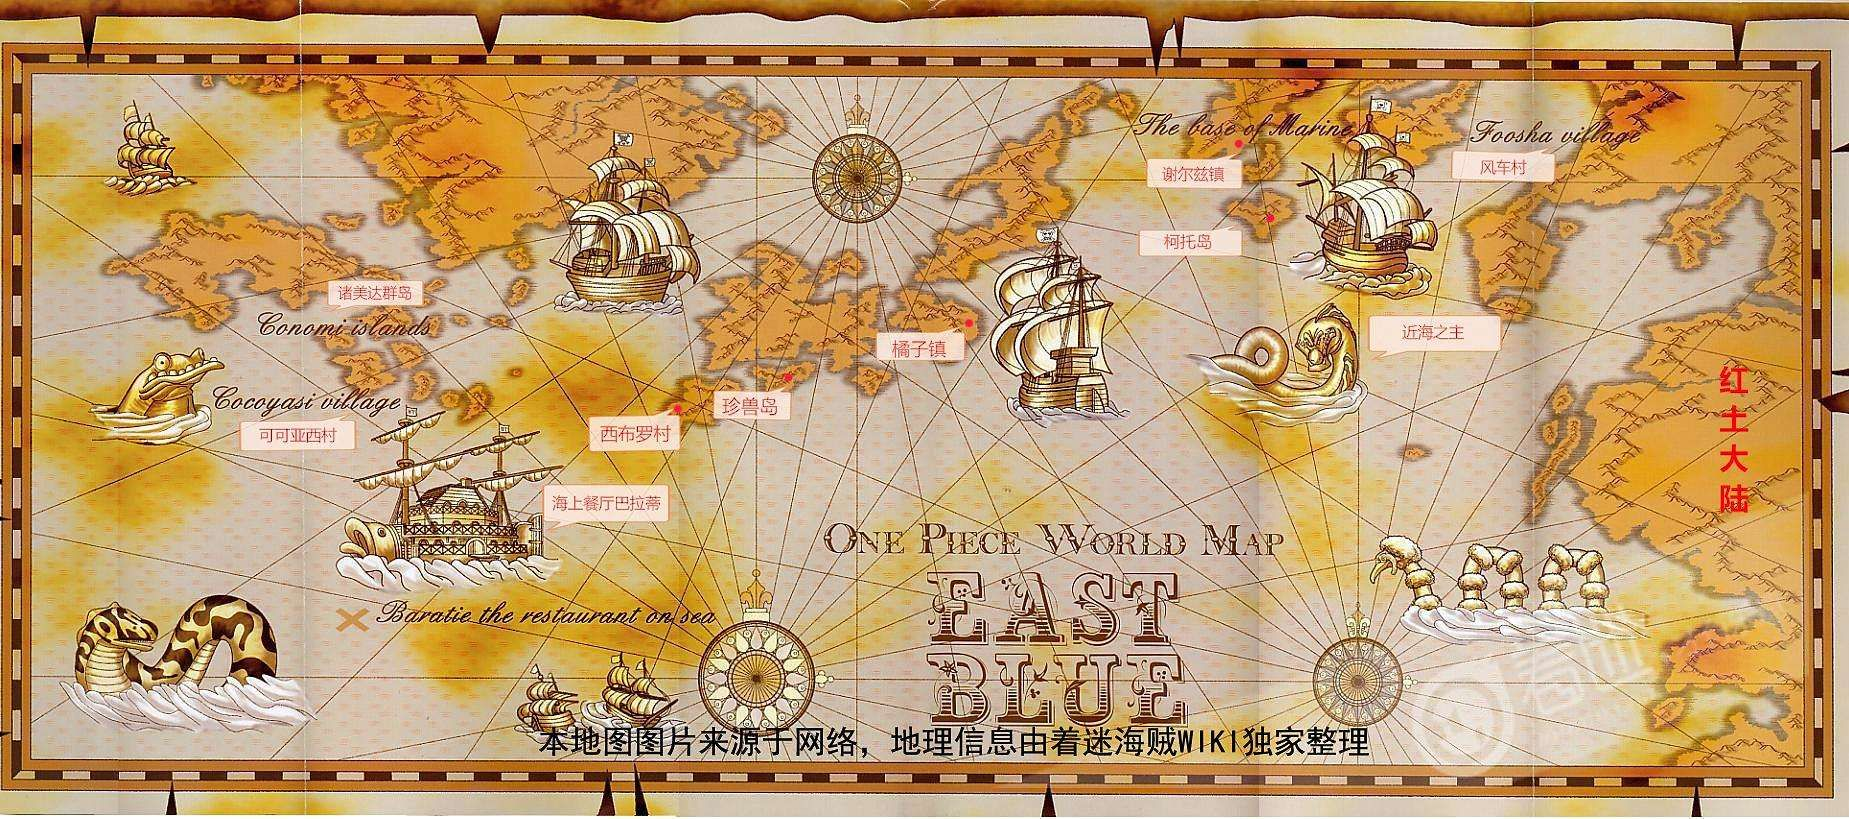 Pin By Jerry Ya On Creative Vintage World Maps One Piece Movies Anime Sites